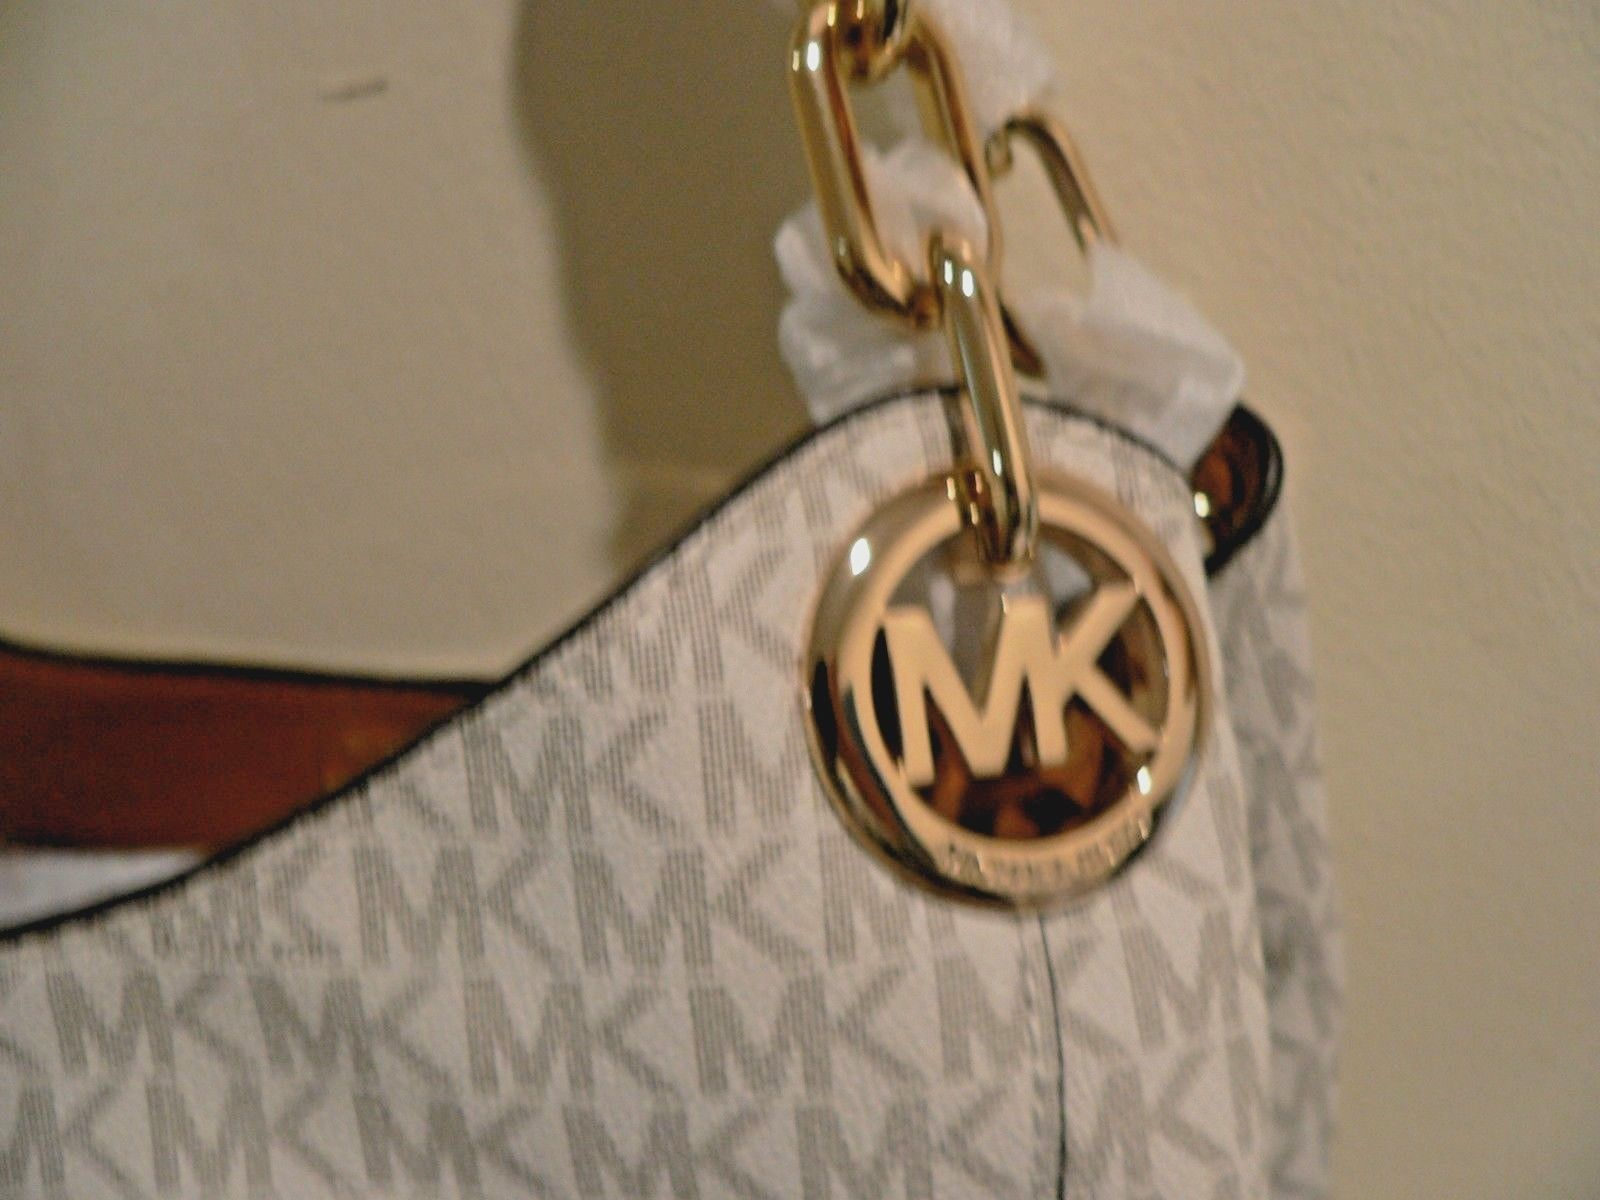 NWT Authentic  MICHAEL Kors Fulton Large Signature Hobo Bag Handbag Vanilla Gold